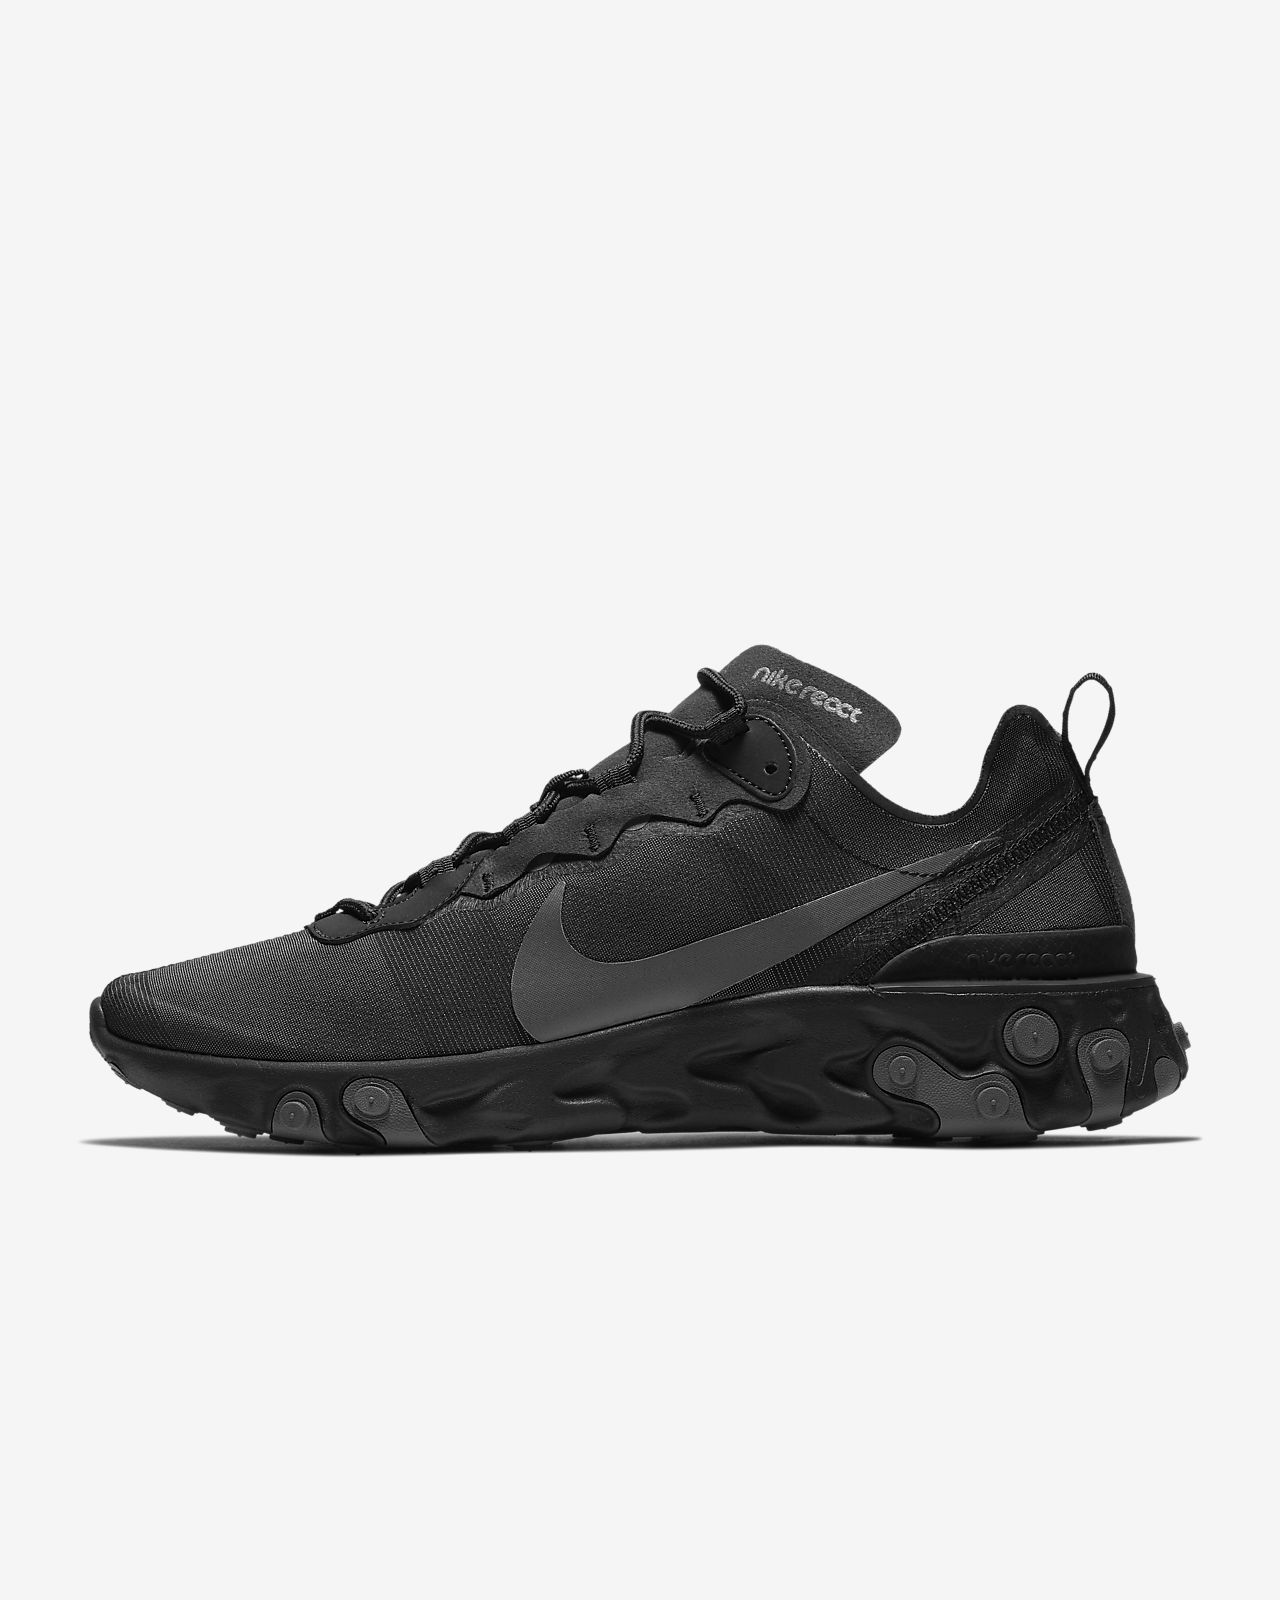 a8ffa4736868 Nike React Element 55 Men s Shoe. Nike.com